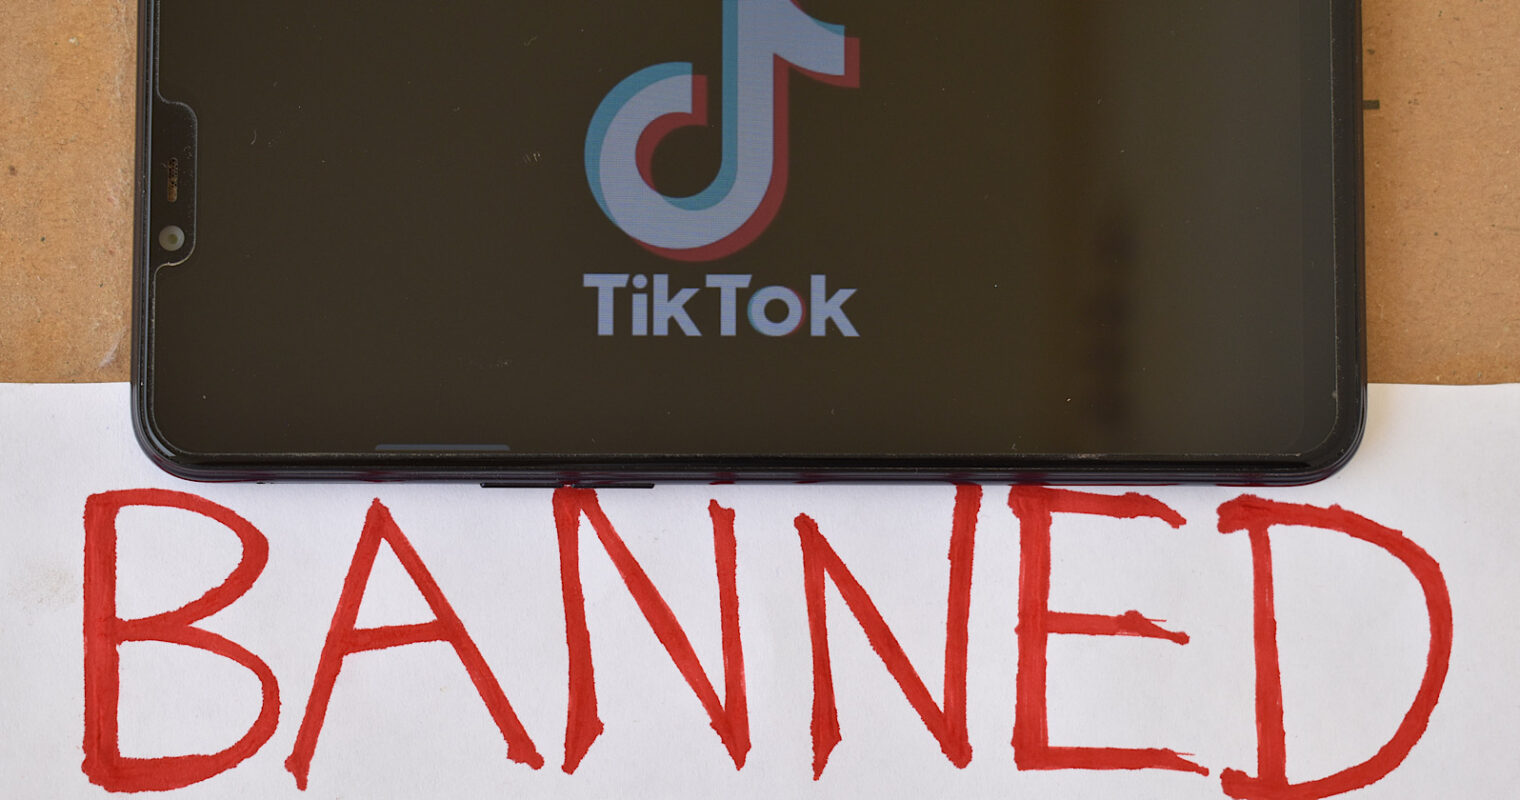 TikTok Banned in United States As of Sunday